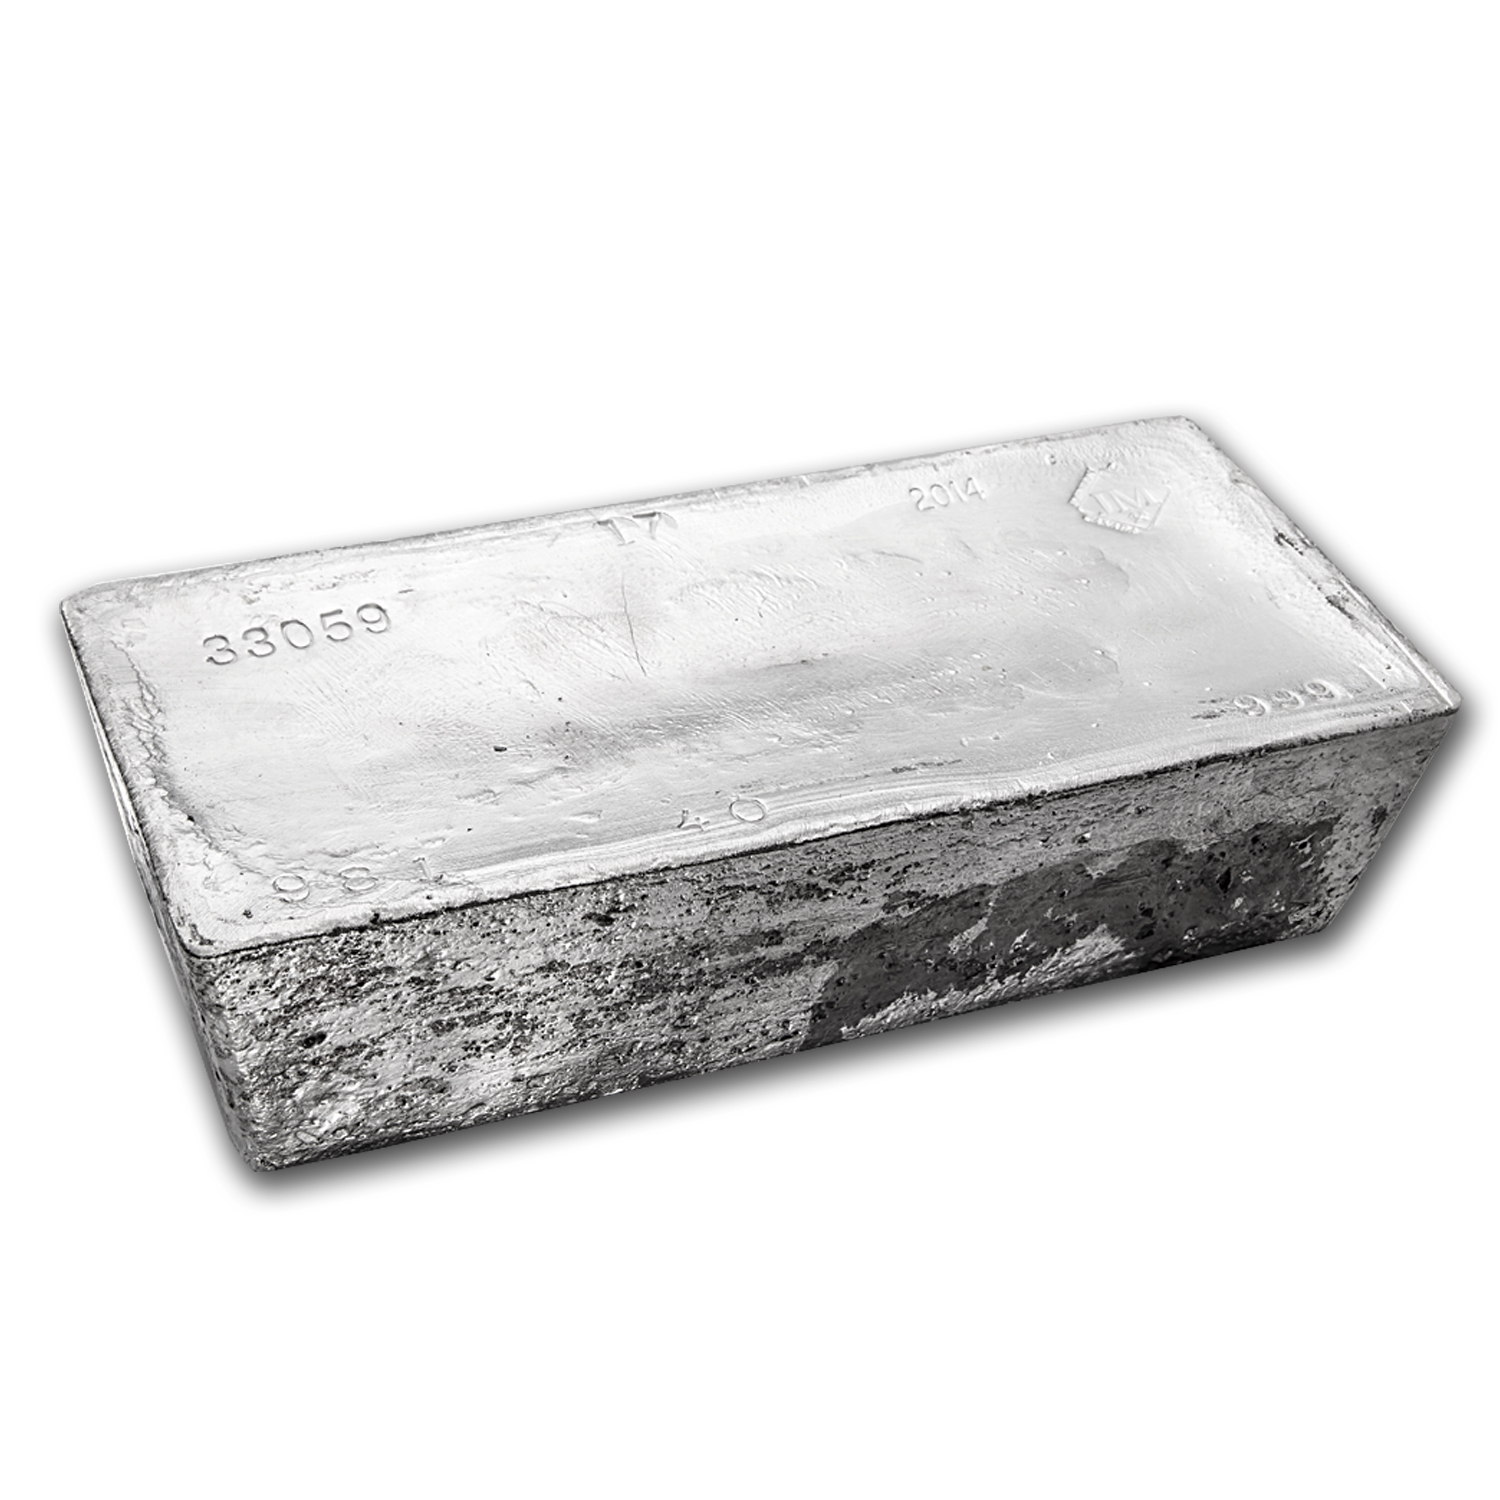 944.40 oz Silver Bar - Johnson Matthey